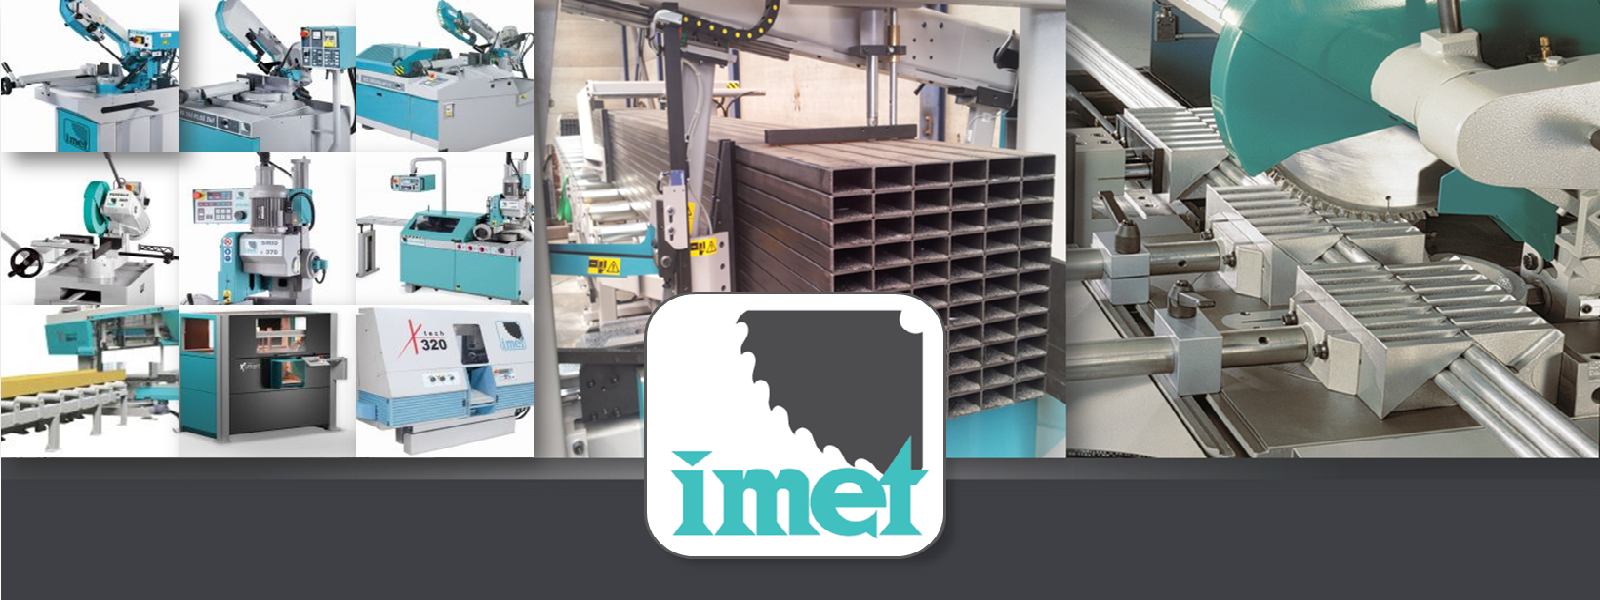 IMET Sawing Technology